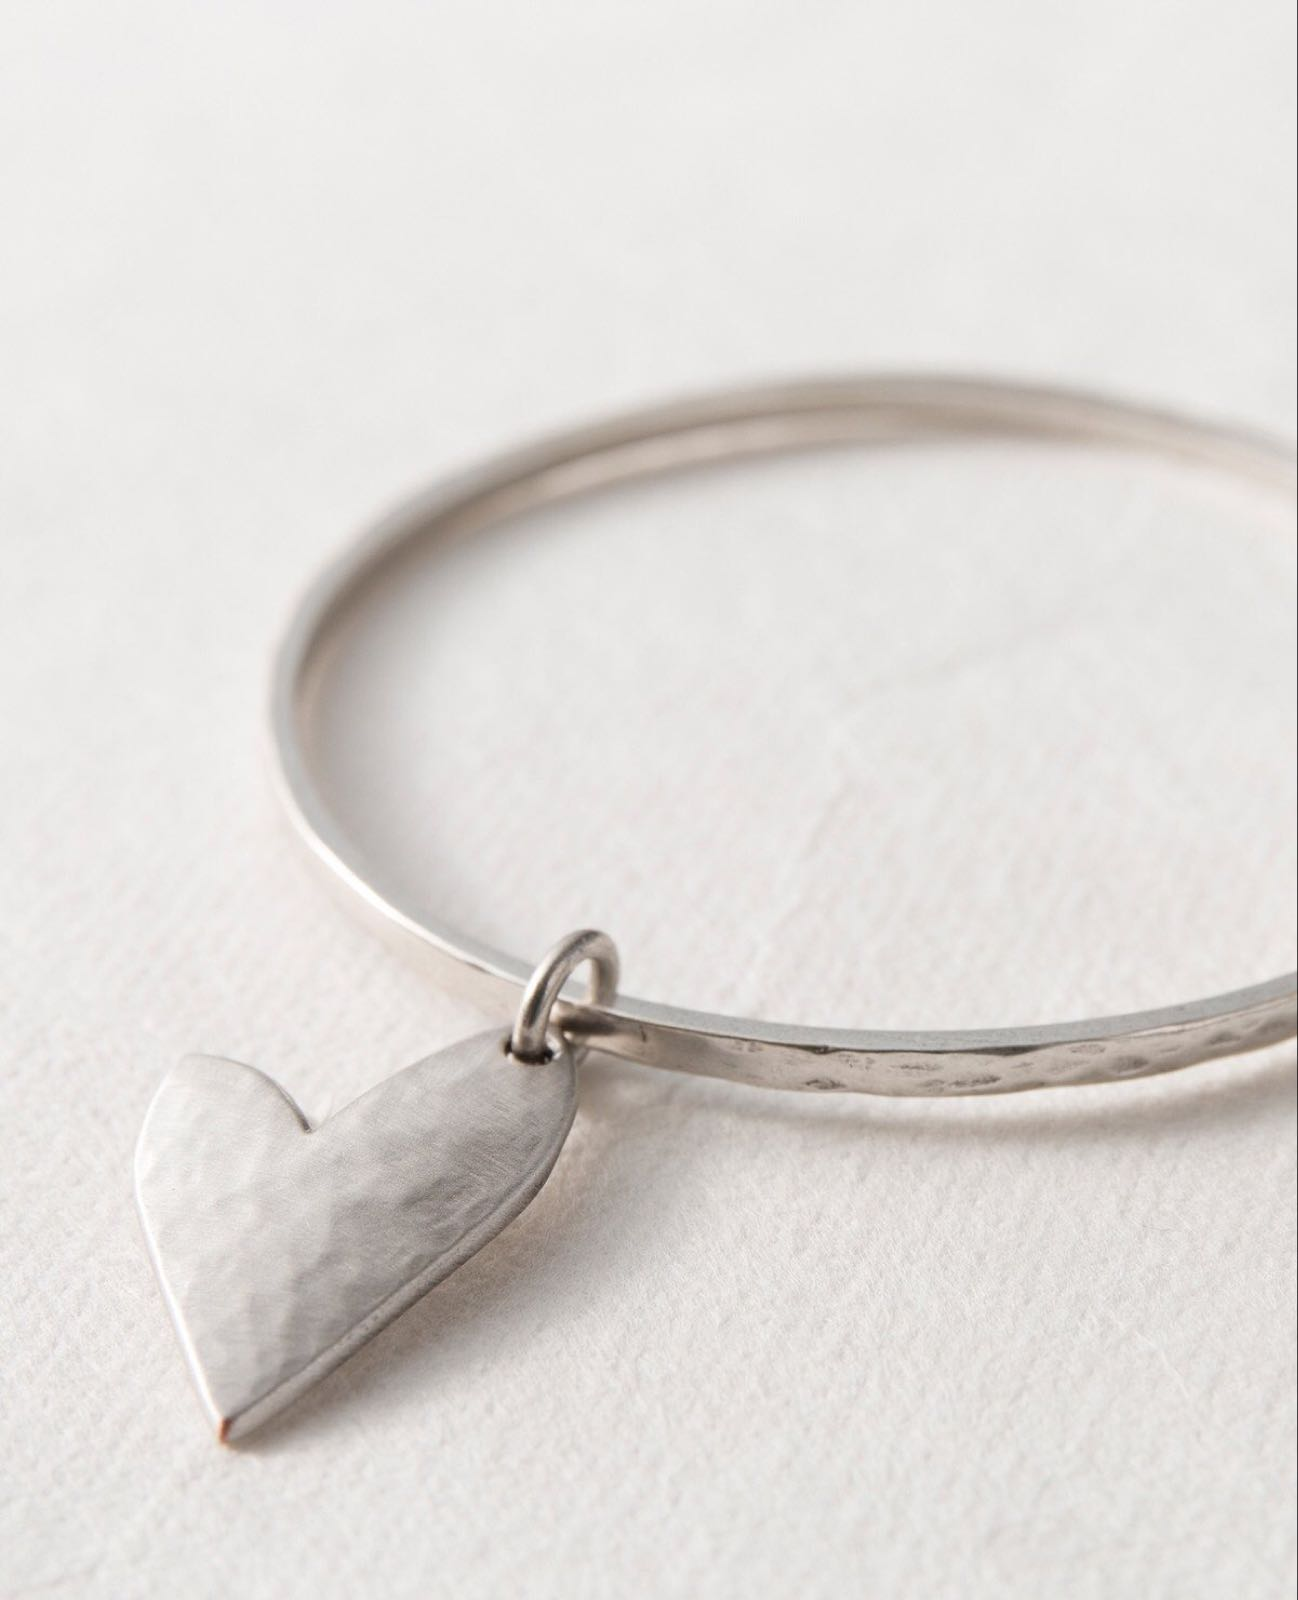 Danon true love bangle